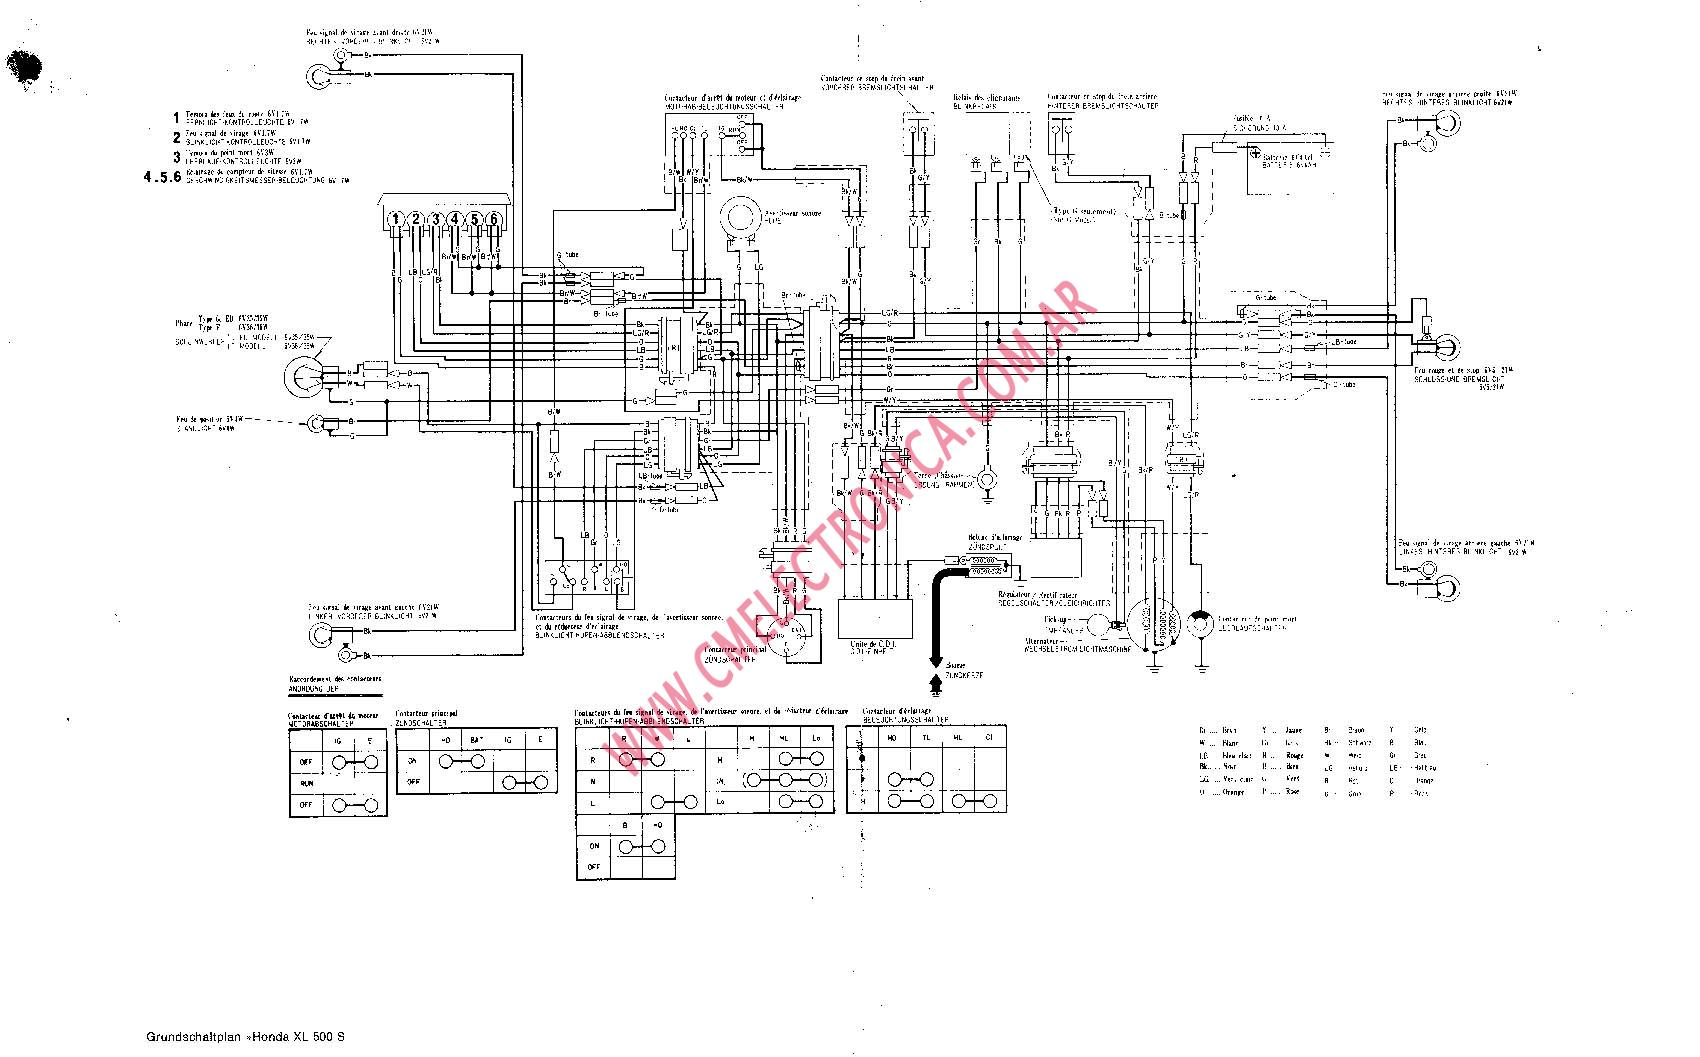 1983 Goldwing Wiring Diagram Phantom Wiring Diagram Wiring